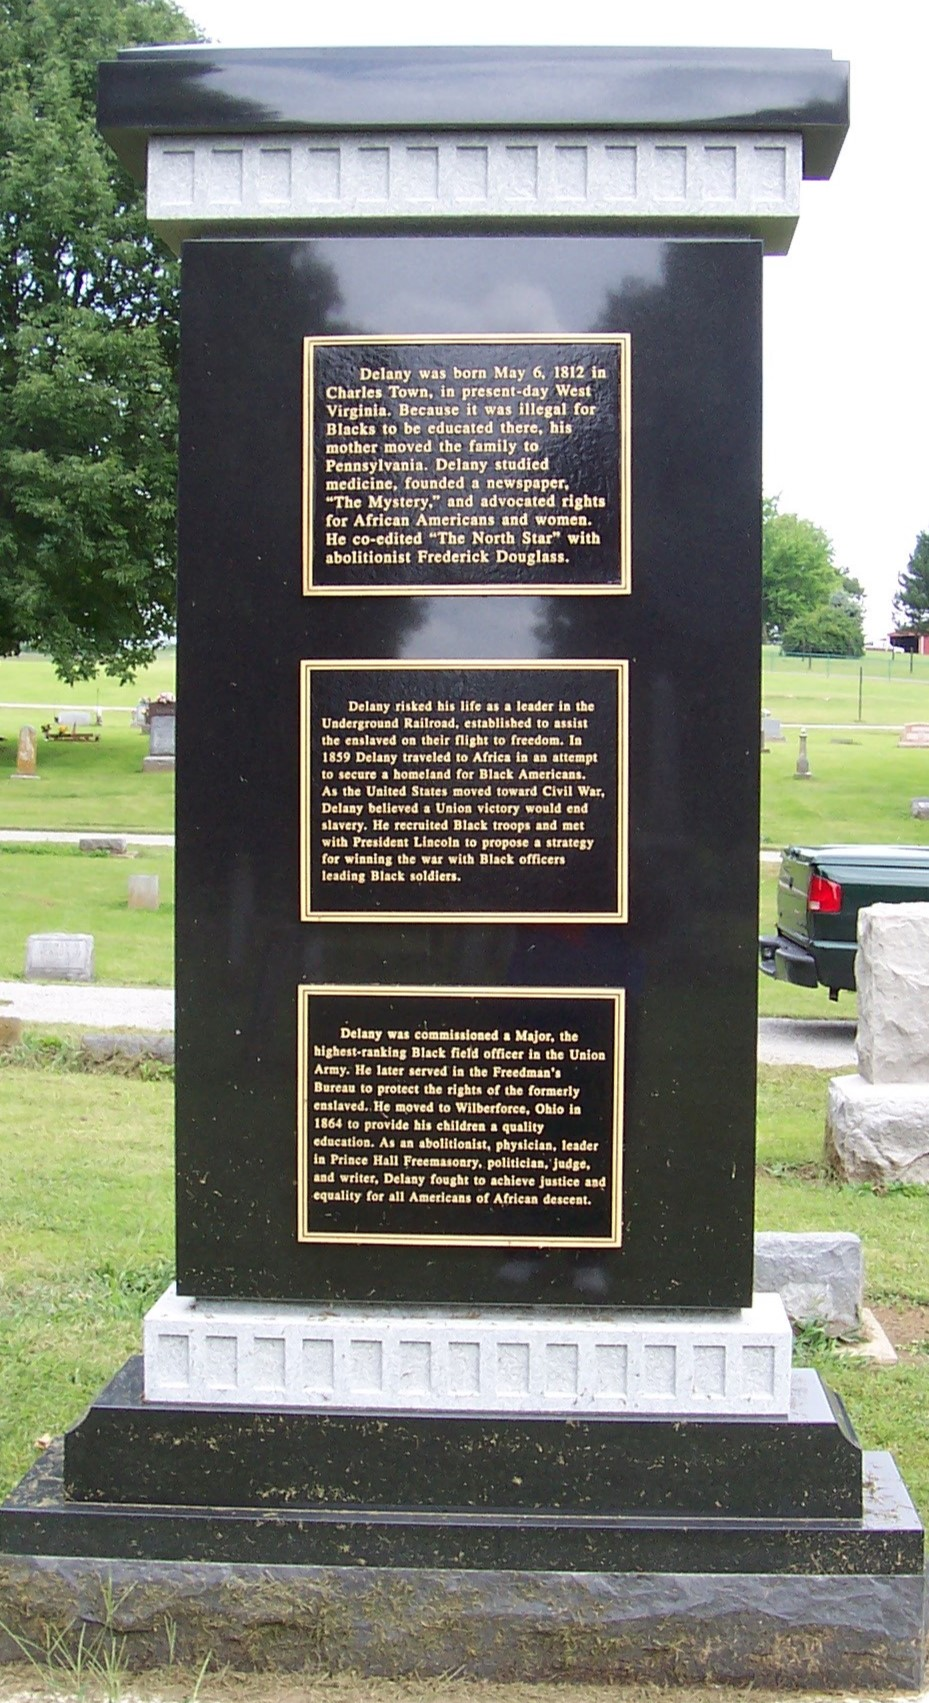 The current monument includes a short history of Delany's life and was made possible by donations